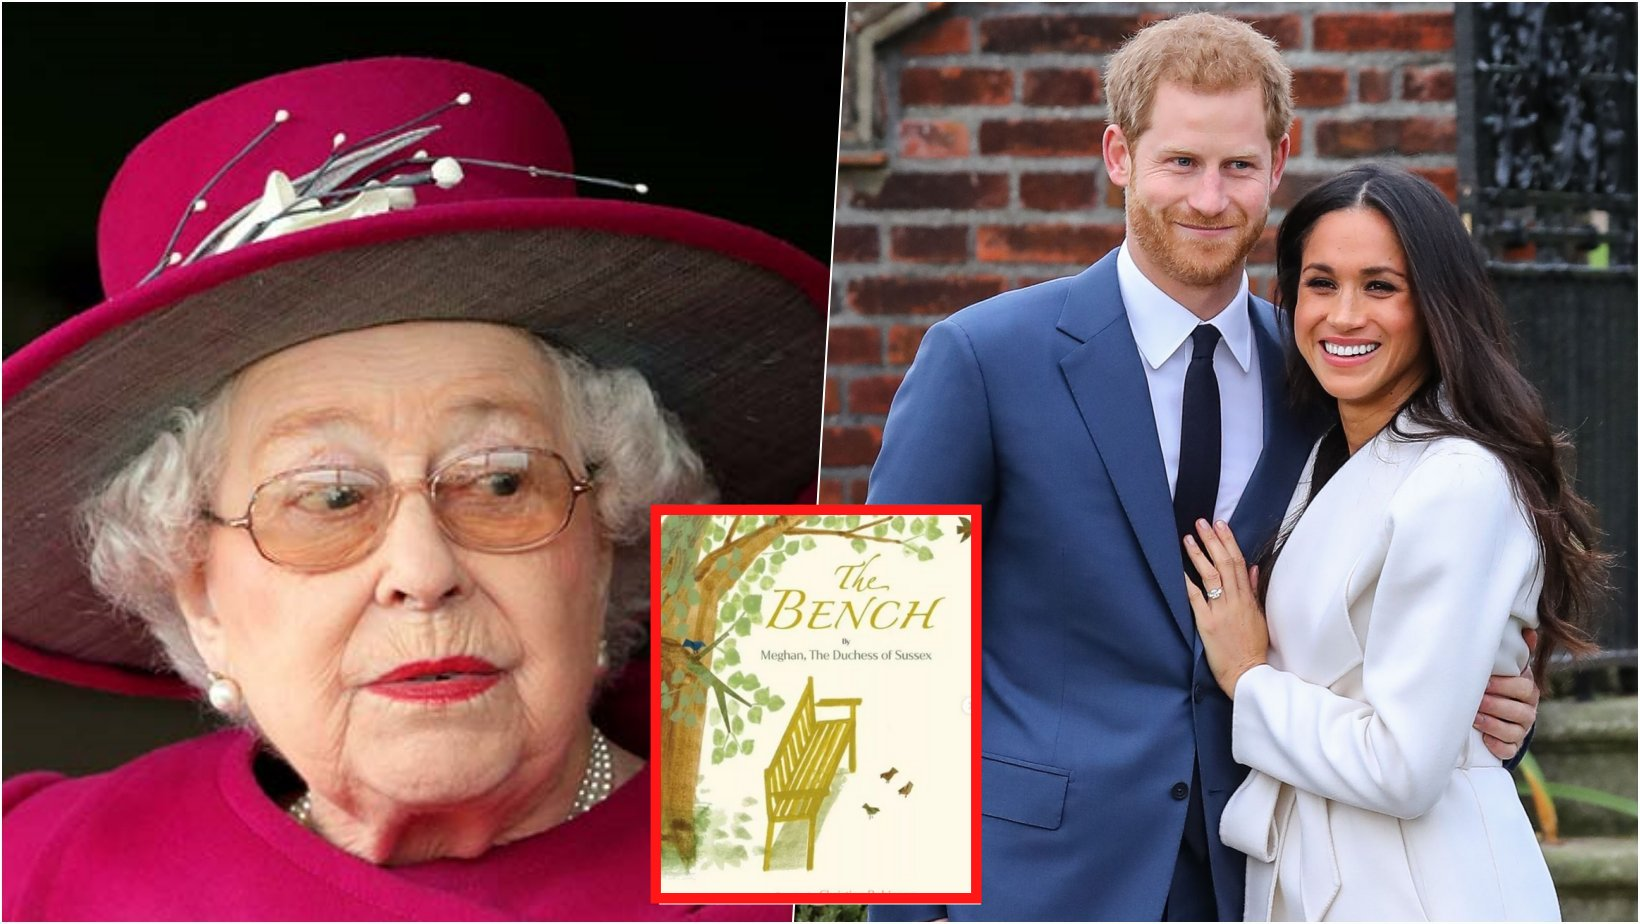 small joys thumbnail.png?resize=1200,630 - The Queen 'Will Contact Publishers' To Erase Meghan Markle's Royal Title From Her New Book